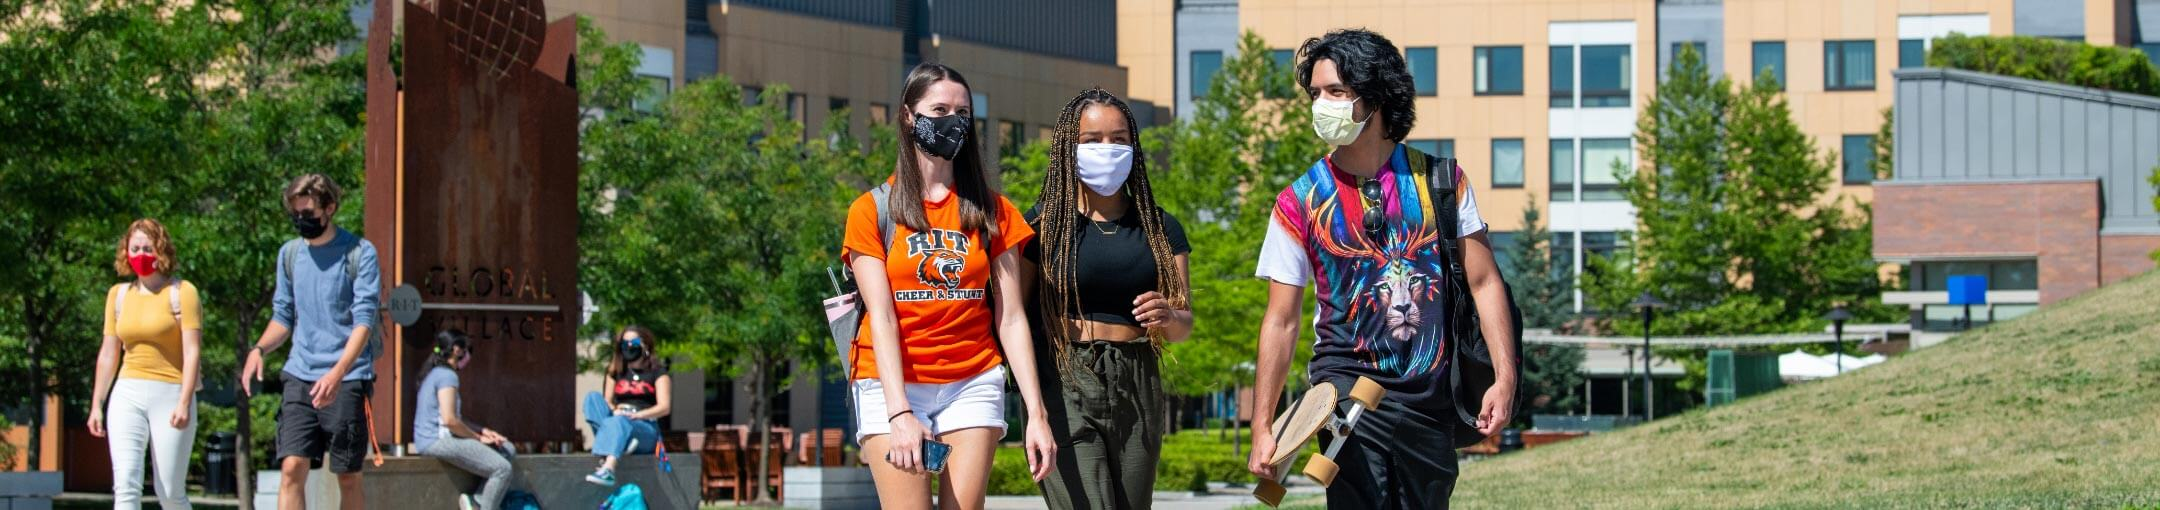 Three students walking through Global Village with other students in the background.